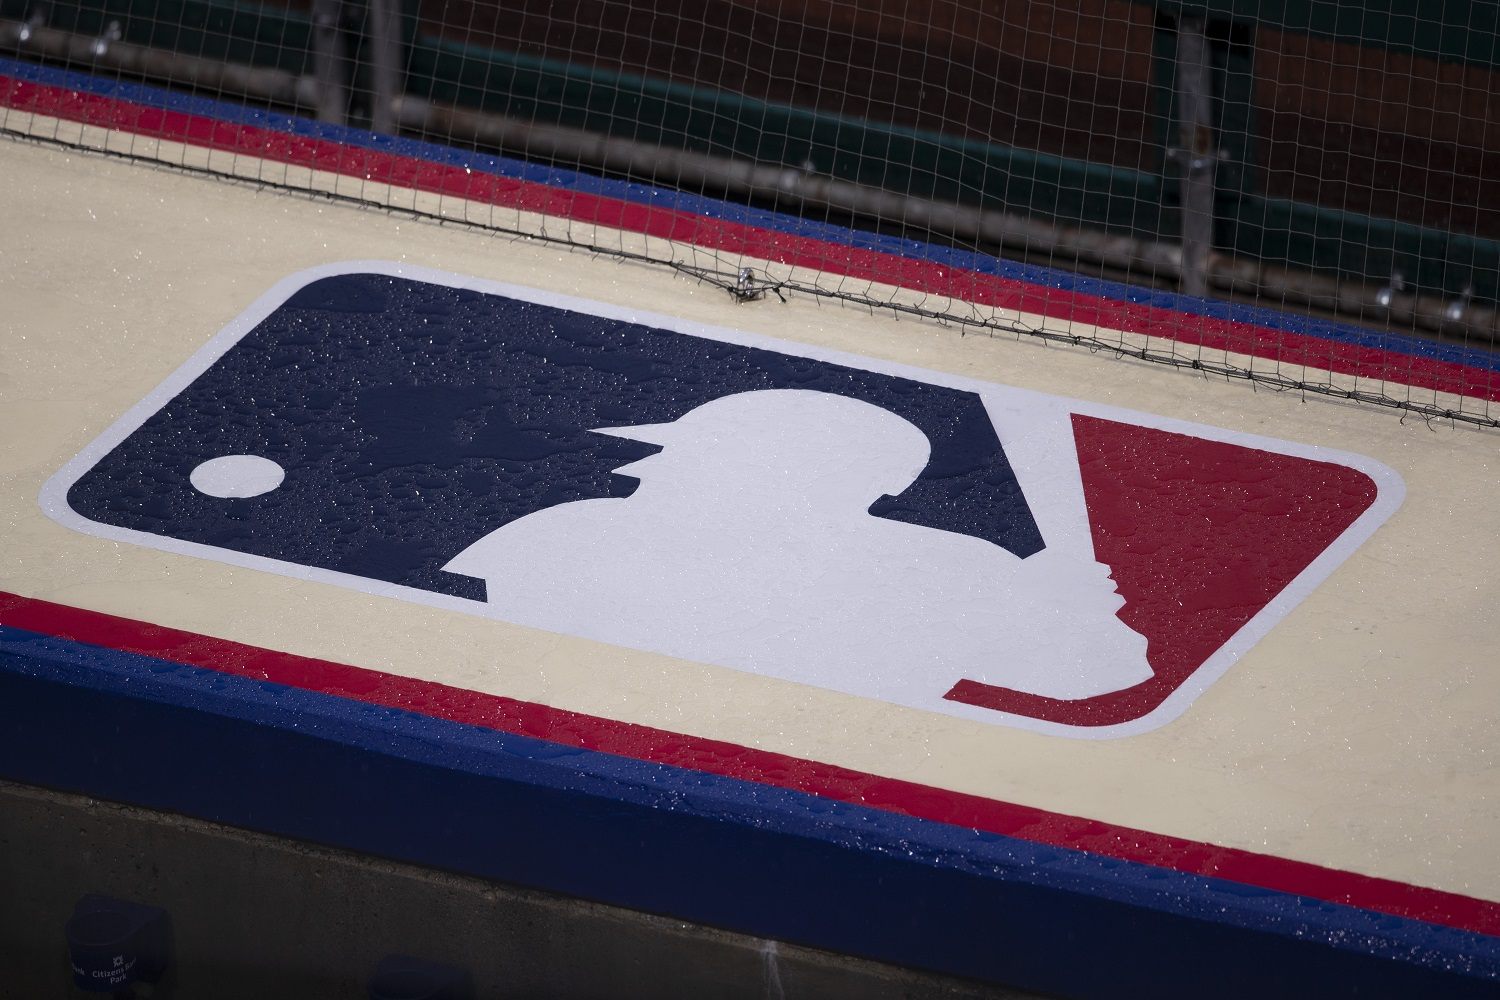 2020 MLB Playoffs: How Seeding Works, Where Games Will Be Played, Tiebreaker Rules, and Everything Else You Need To Know